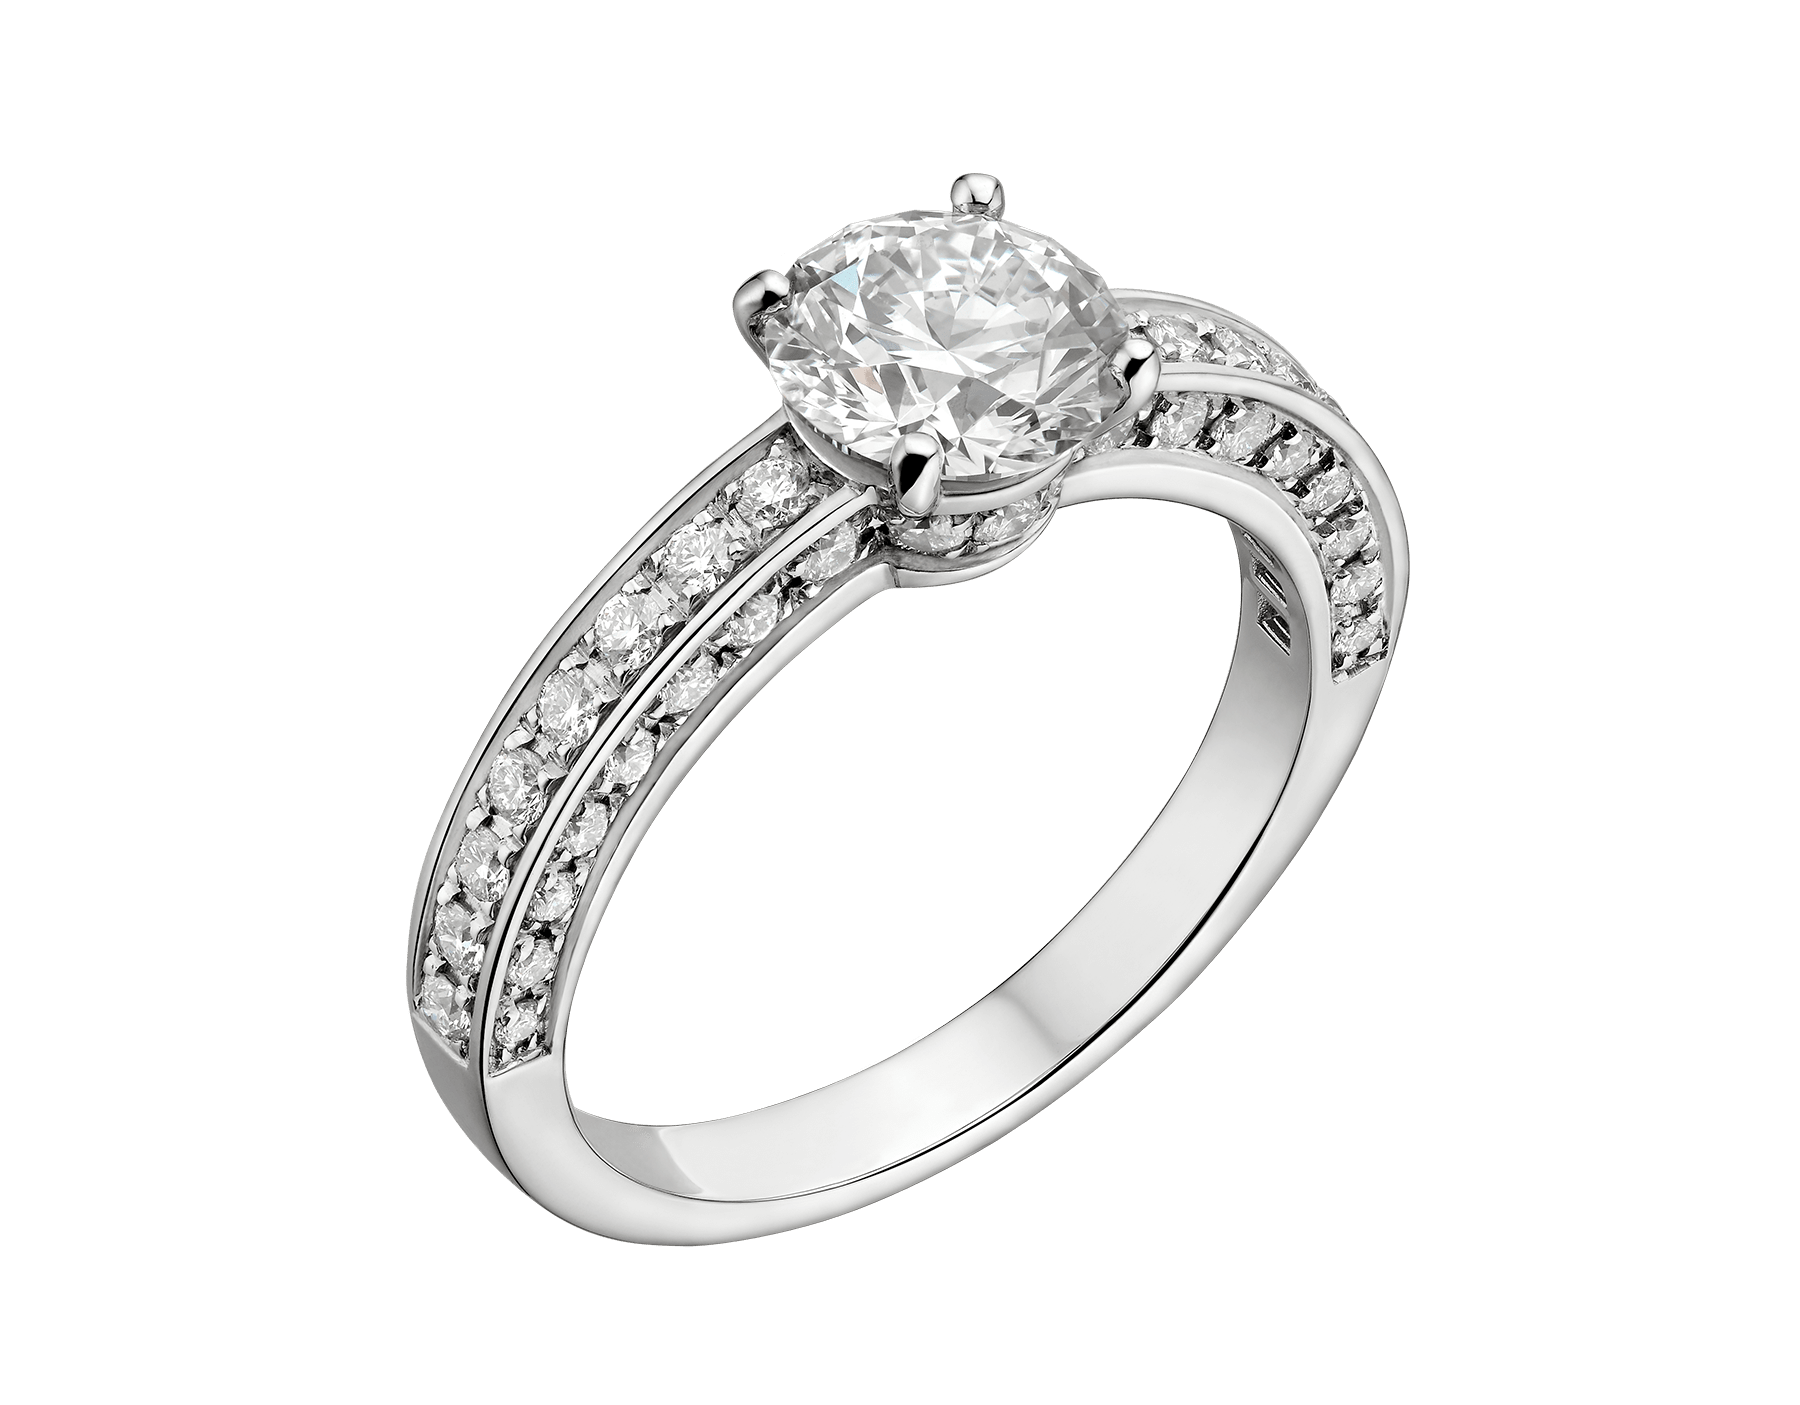 Dedicata a Venezia: 1503 solitaire ring in platinum with a round brilliant-cut diamond and pavé diamonds. Available from 0.30 ct. Named after the year in which the first engagement ring was offered in Venice. 343609 image 1